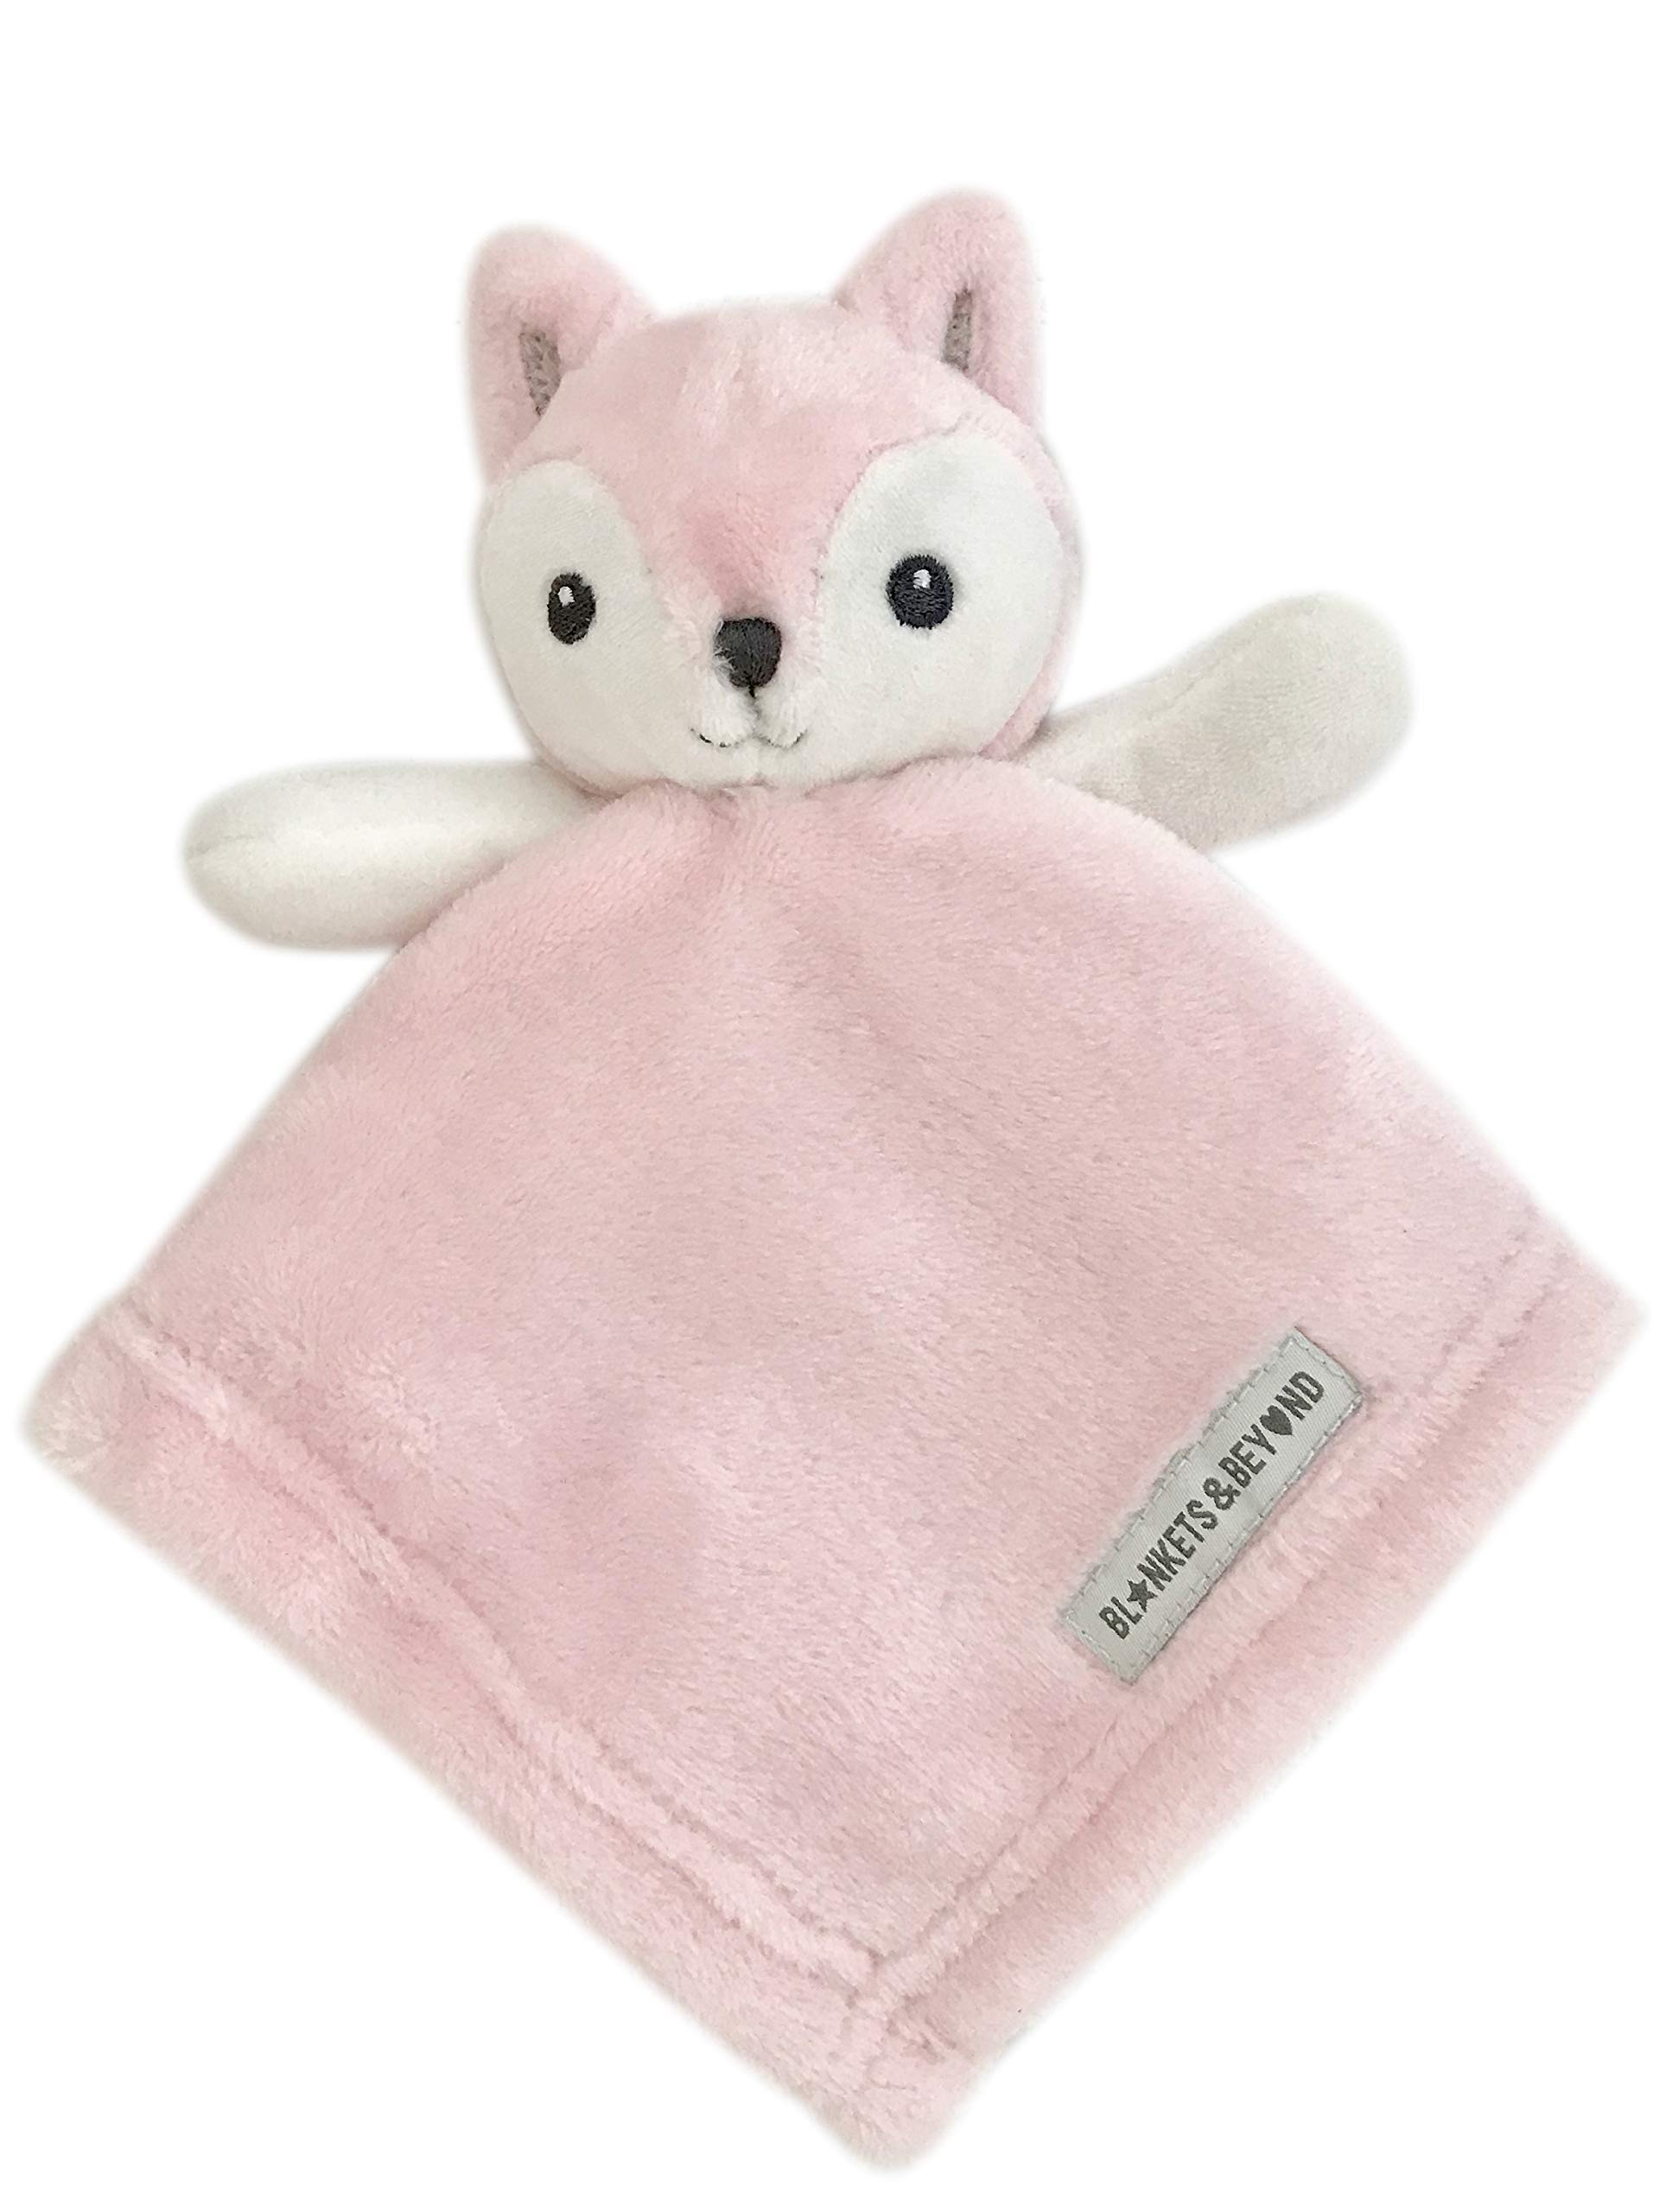 Ultra Plush Personalized Adorable Lovey | Embroidered Cuddly Stuffed Fox Baby Extra Soft Nunu Security Blanket | Gifts with Designer Look & Quality Material, 15x15 Inch (Baby Pink), Boy or Girl by Blankets and Beyond